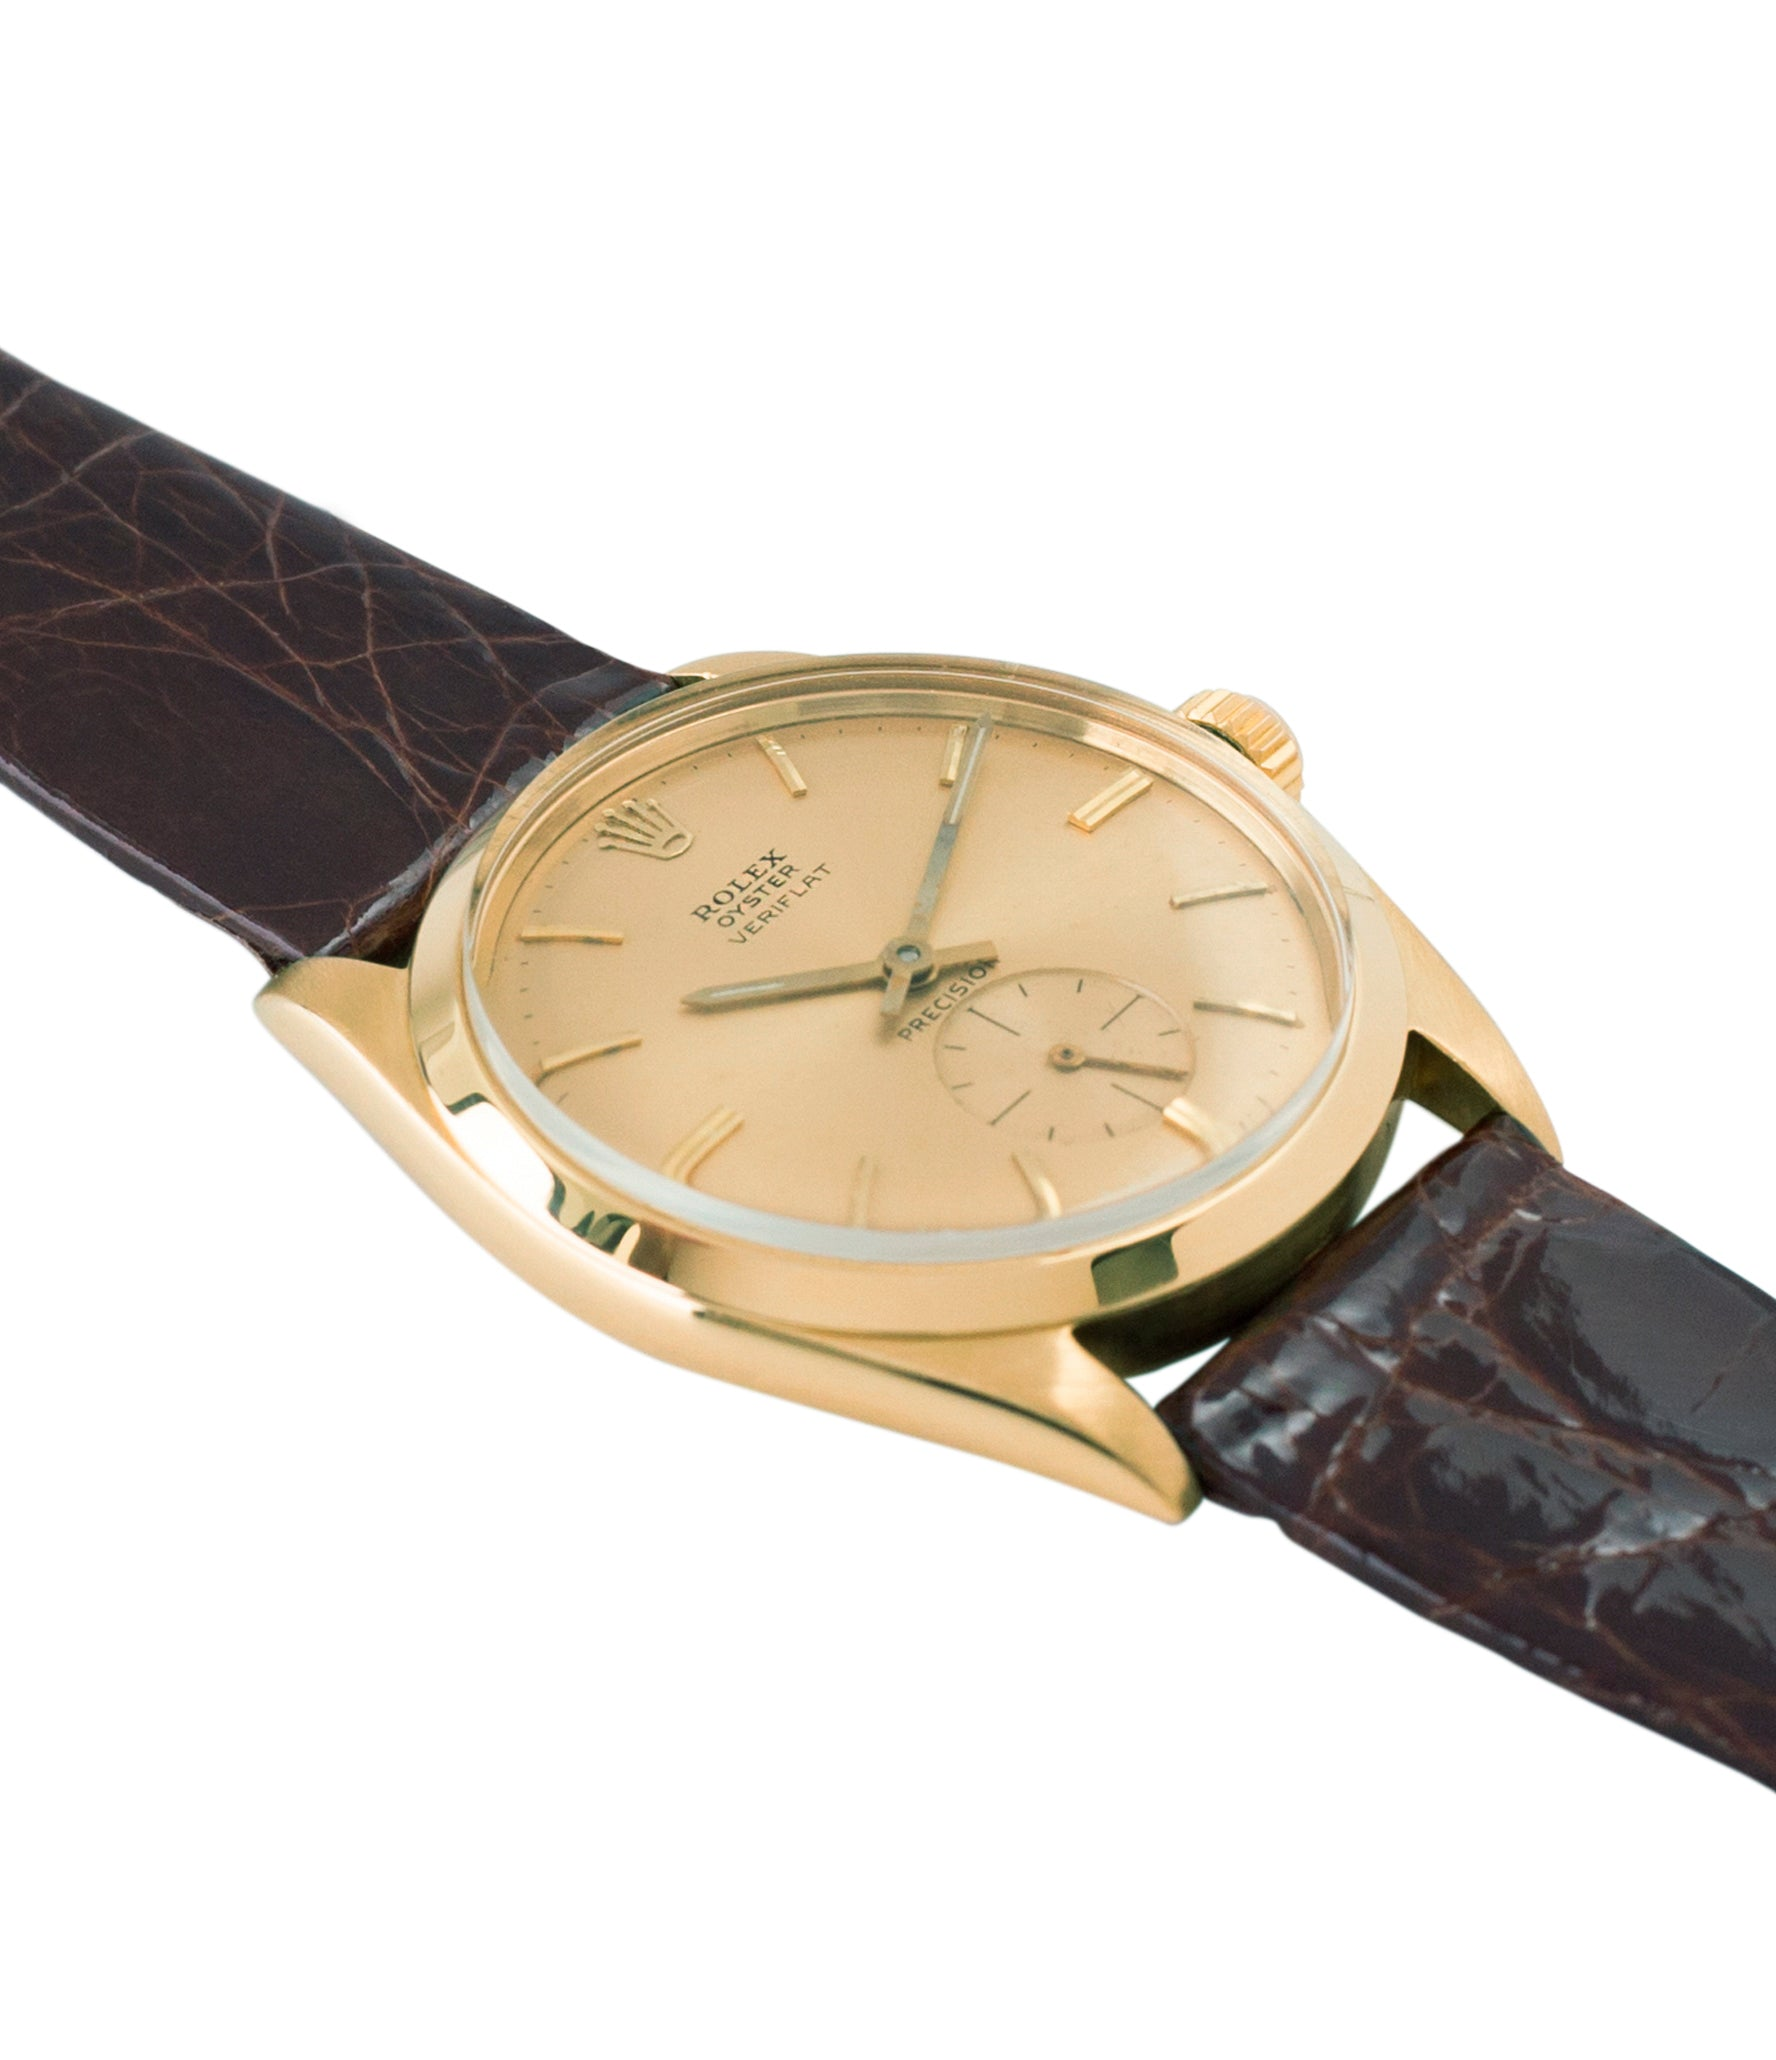 buy Rolex Veriflat 6512 yellow gold rare dress watch for sale online at A Collected Man London vintage watch specialist UK